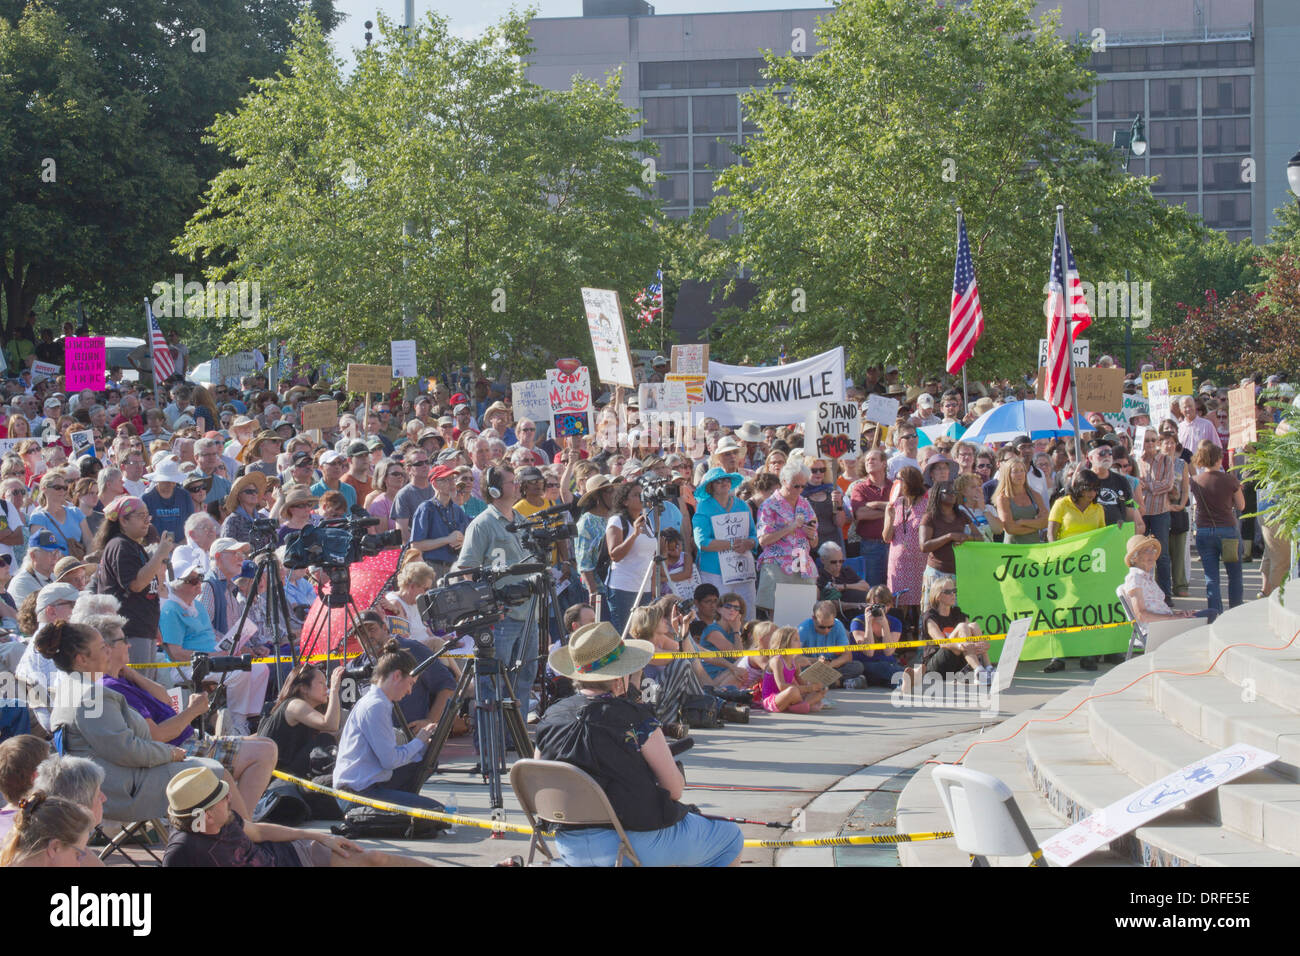 Asheville, North Carolina, USA - August 5, 2013:  Political rally against North Carolina GOP politics and legislation - Stock Image